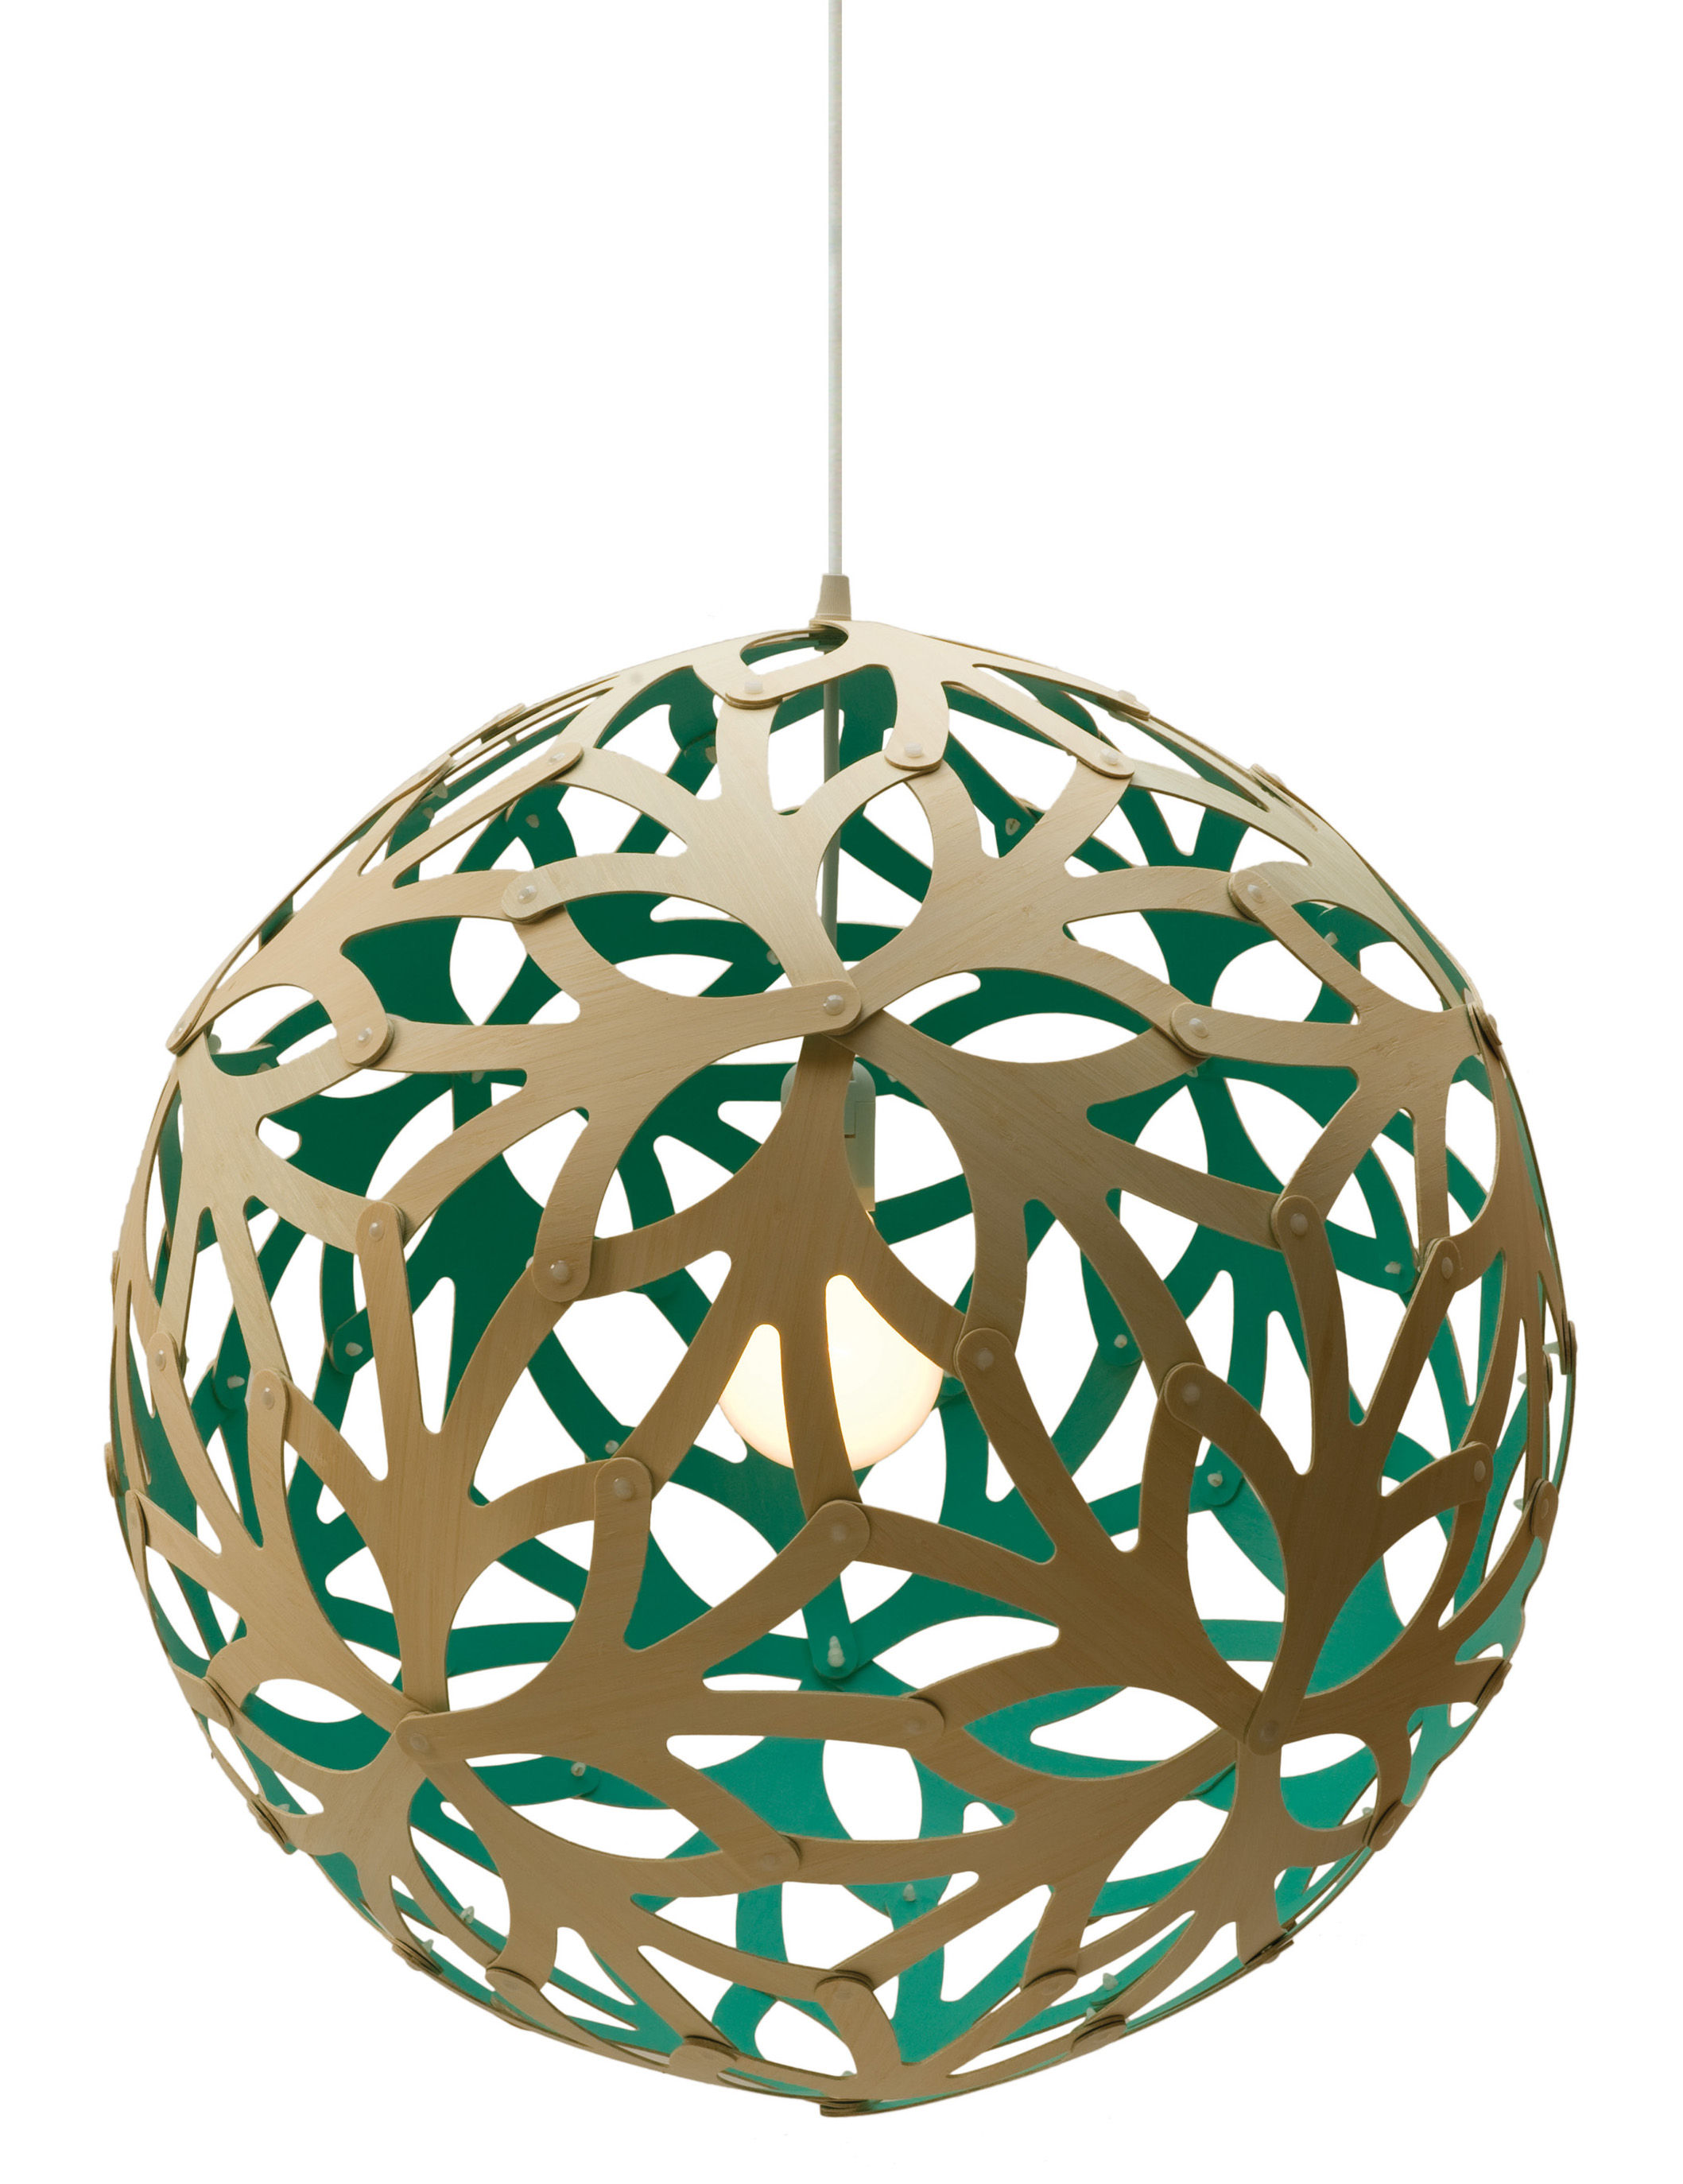 Lighting - Pendant Lighting - Floral Pendant - Ø 60 cm - Bicoloured by David Trubridge - Aqua blue / Natural wood - Pine